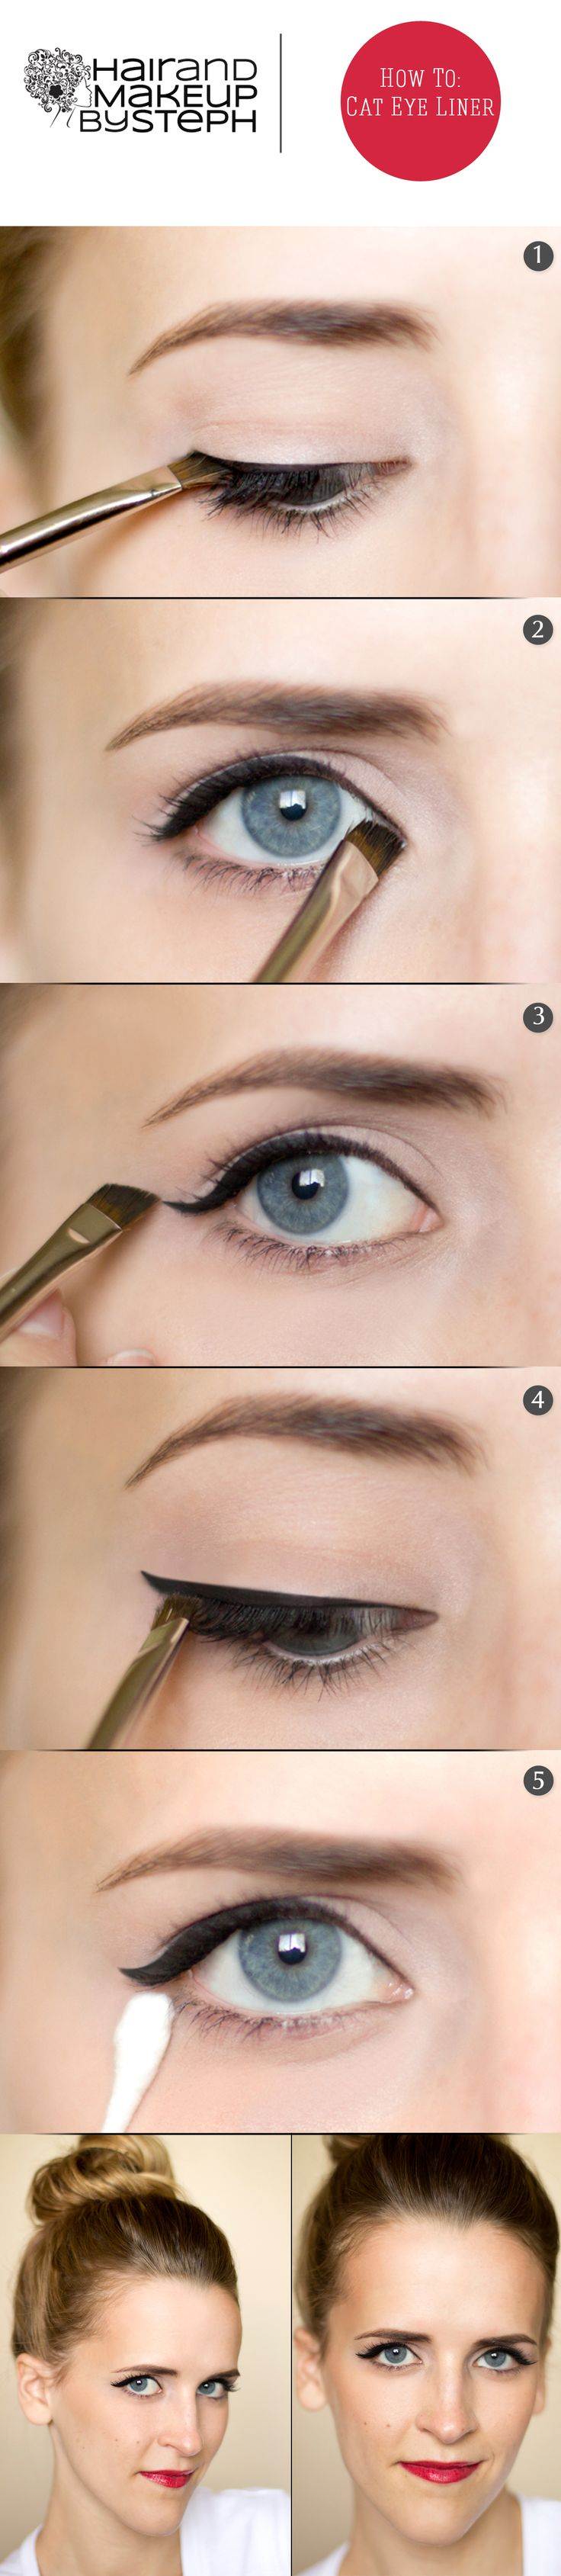 We love Top Pinner Stephanie B.'s Subtle Cat Eye HOW TO. Try using #Sephora Collection PRO Angled Eyeliner Brush #15.  #GettheLook #Cateye @Stephanie Brinkerhoff